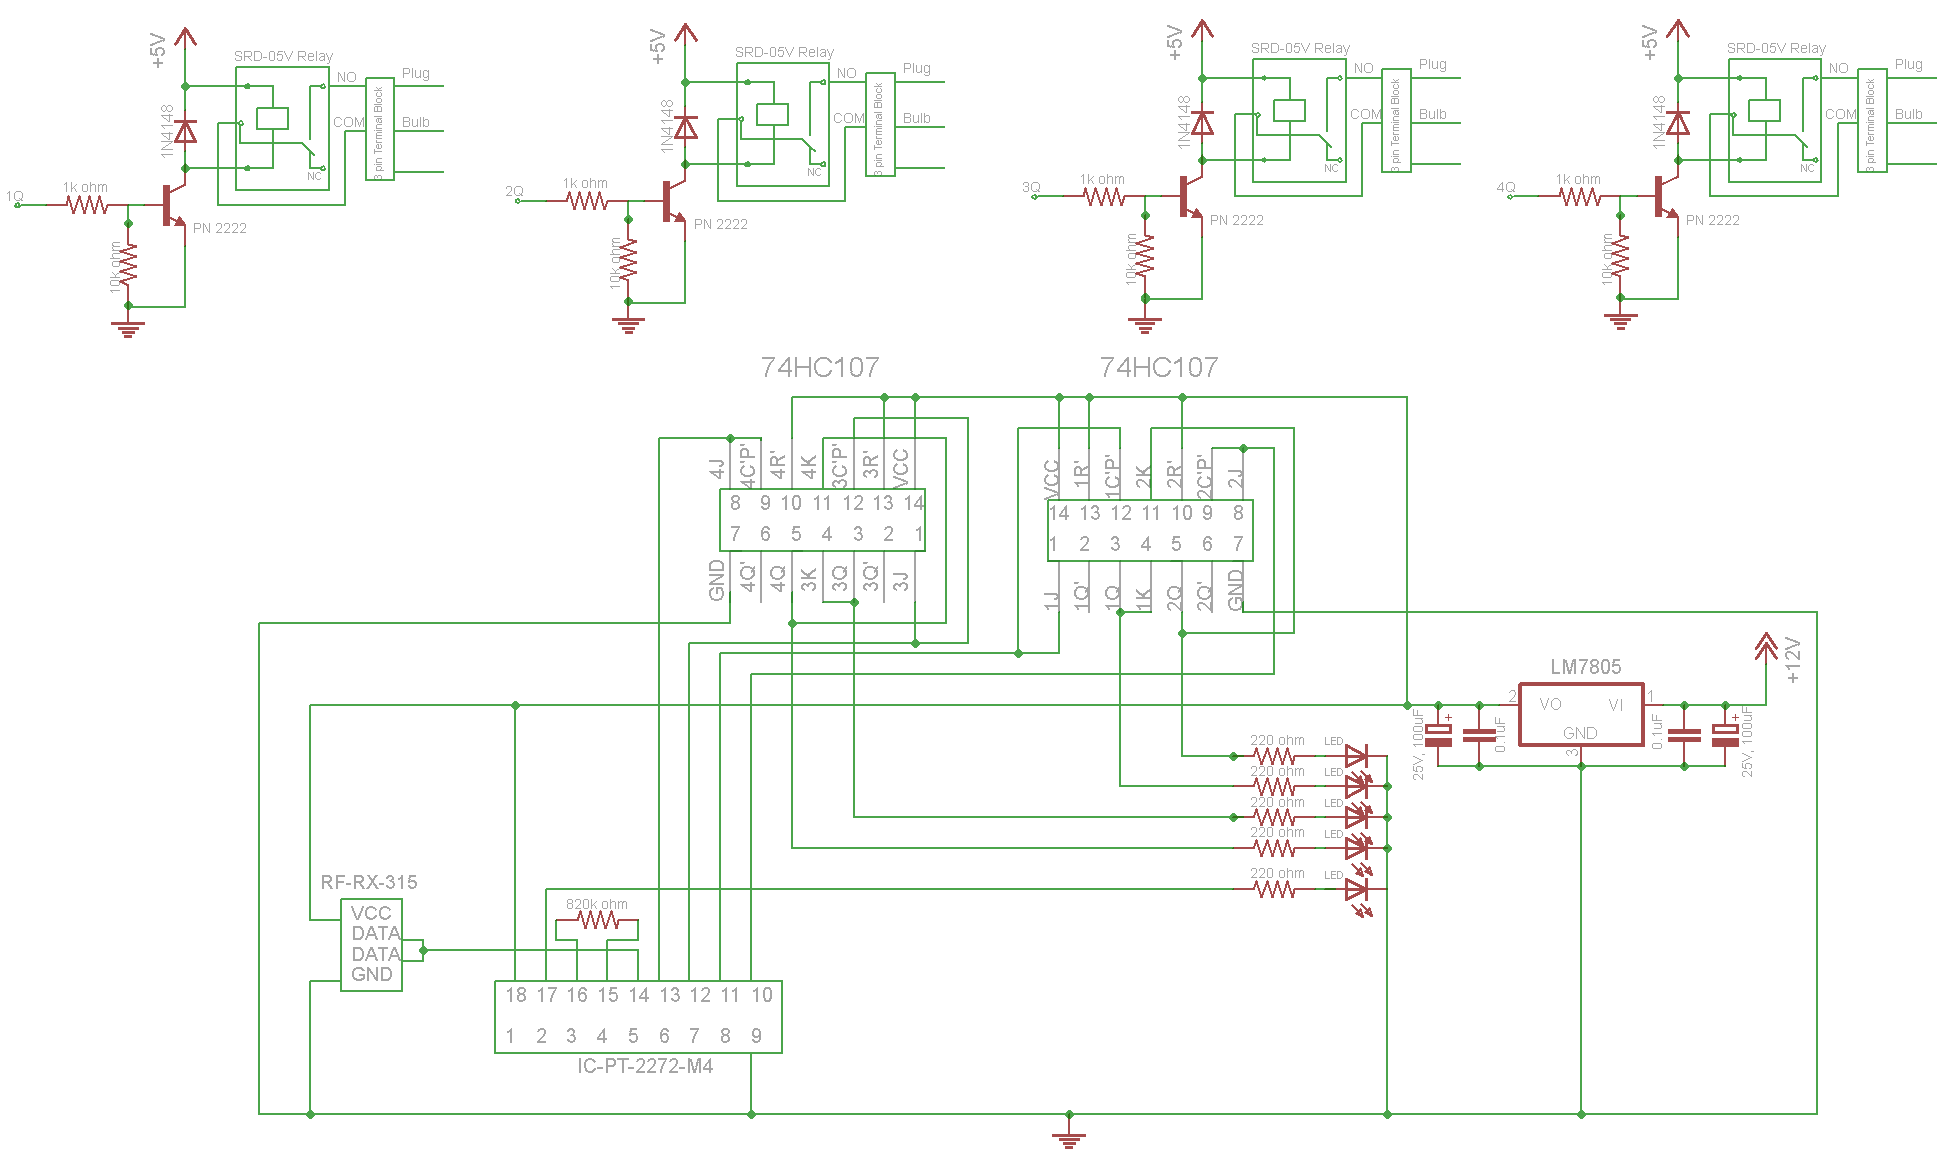 Pt2262 Transmitter Wiring Diagram Trusted Schematics Wireless Testing A Pt2262based Remote Control Element14 315mhz By Using Rf Encoder And Decoder